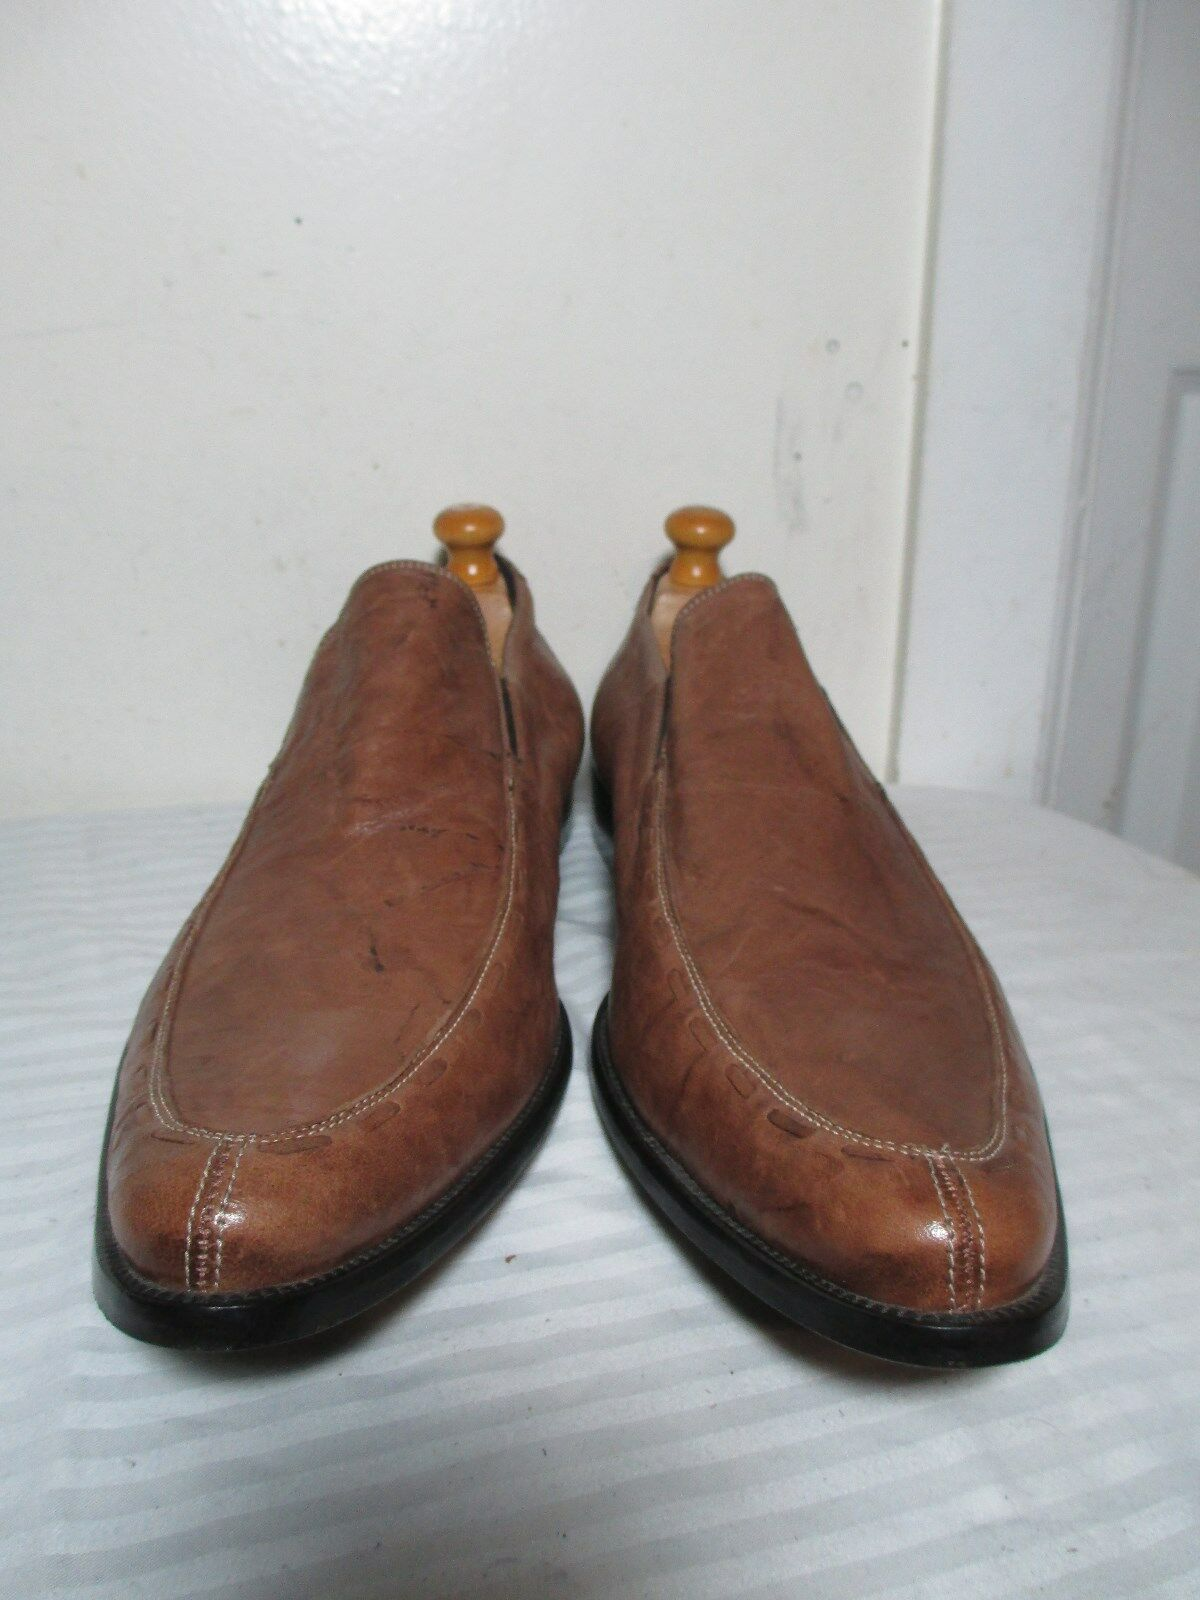 308 DONALD J PLINER JADOR Uomo'S BROWN LEATHER LEATHER LEATHER SLIP ON LOAFERS 15M MADE IN ITALY 6879e9